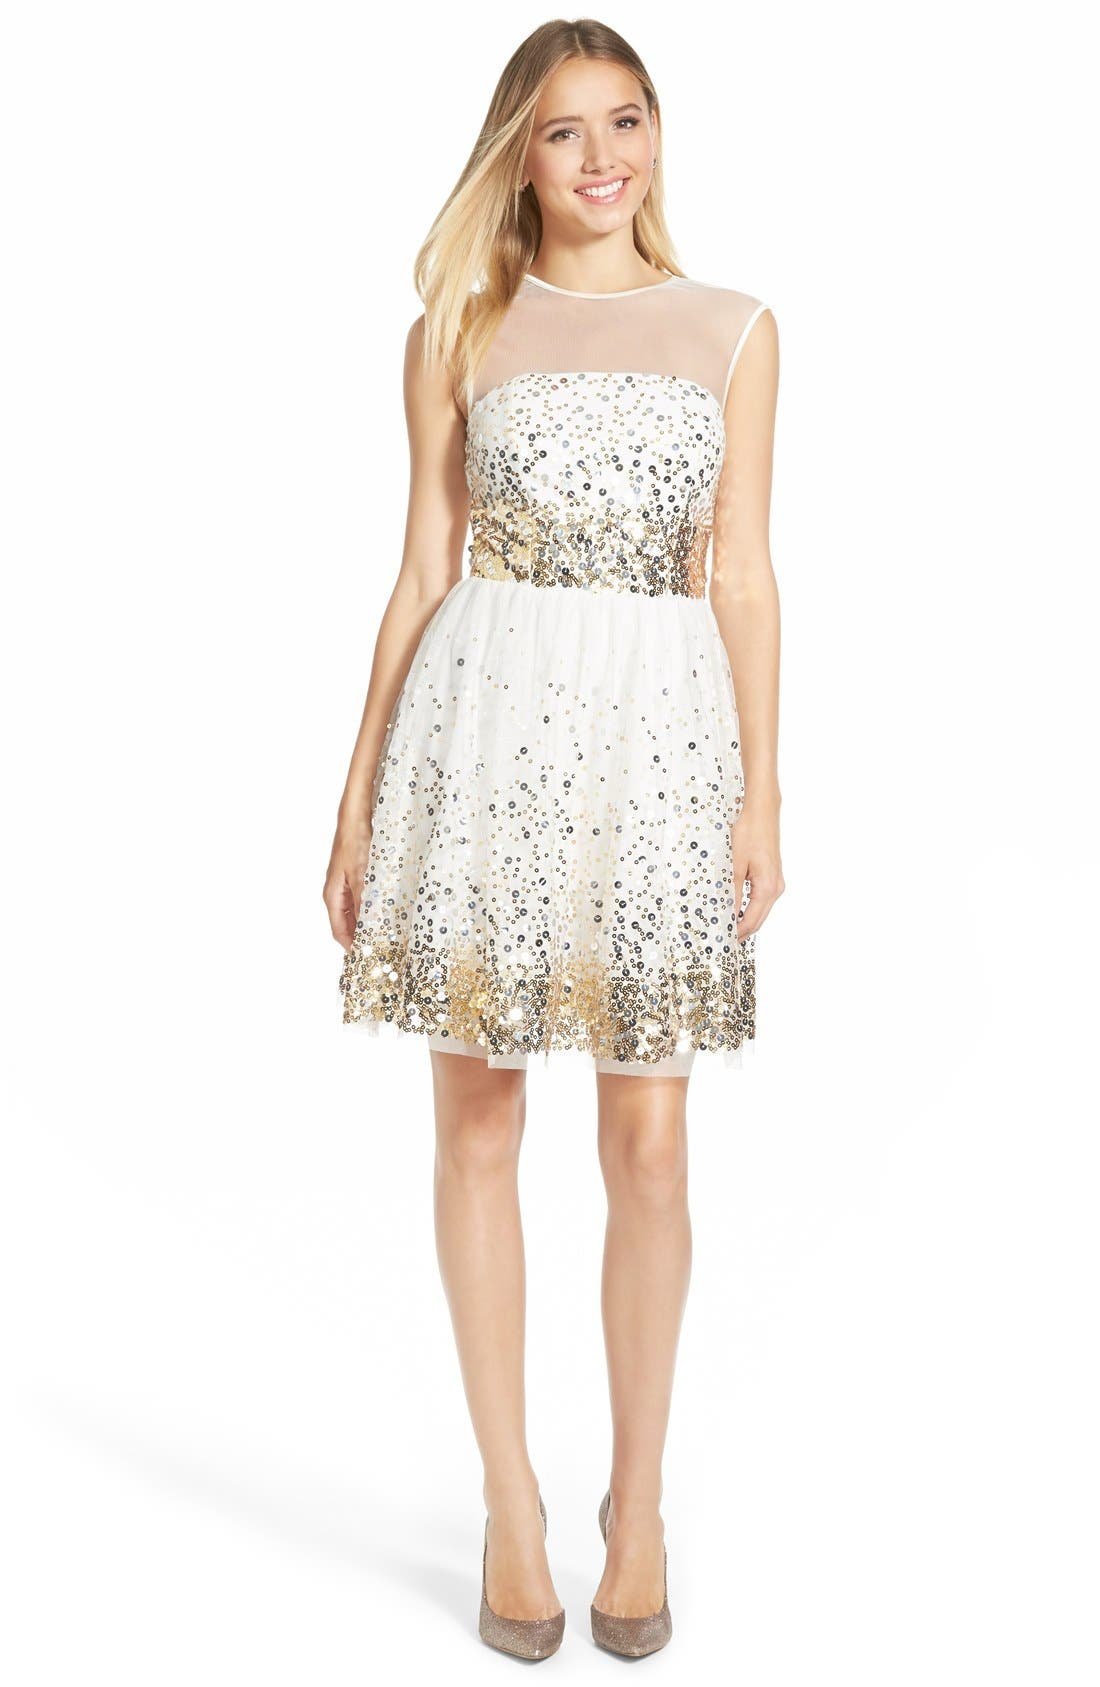 Main Image - Love, Nickie Lew 'Confetti' Sequin Skater Dress